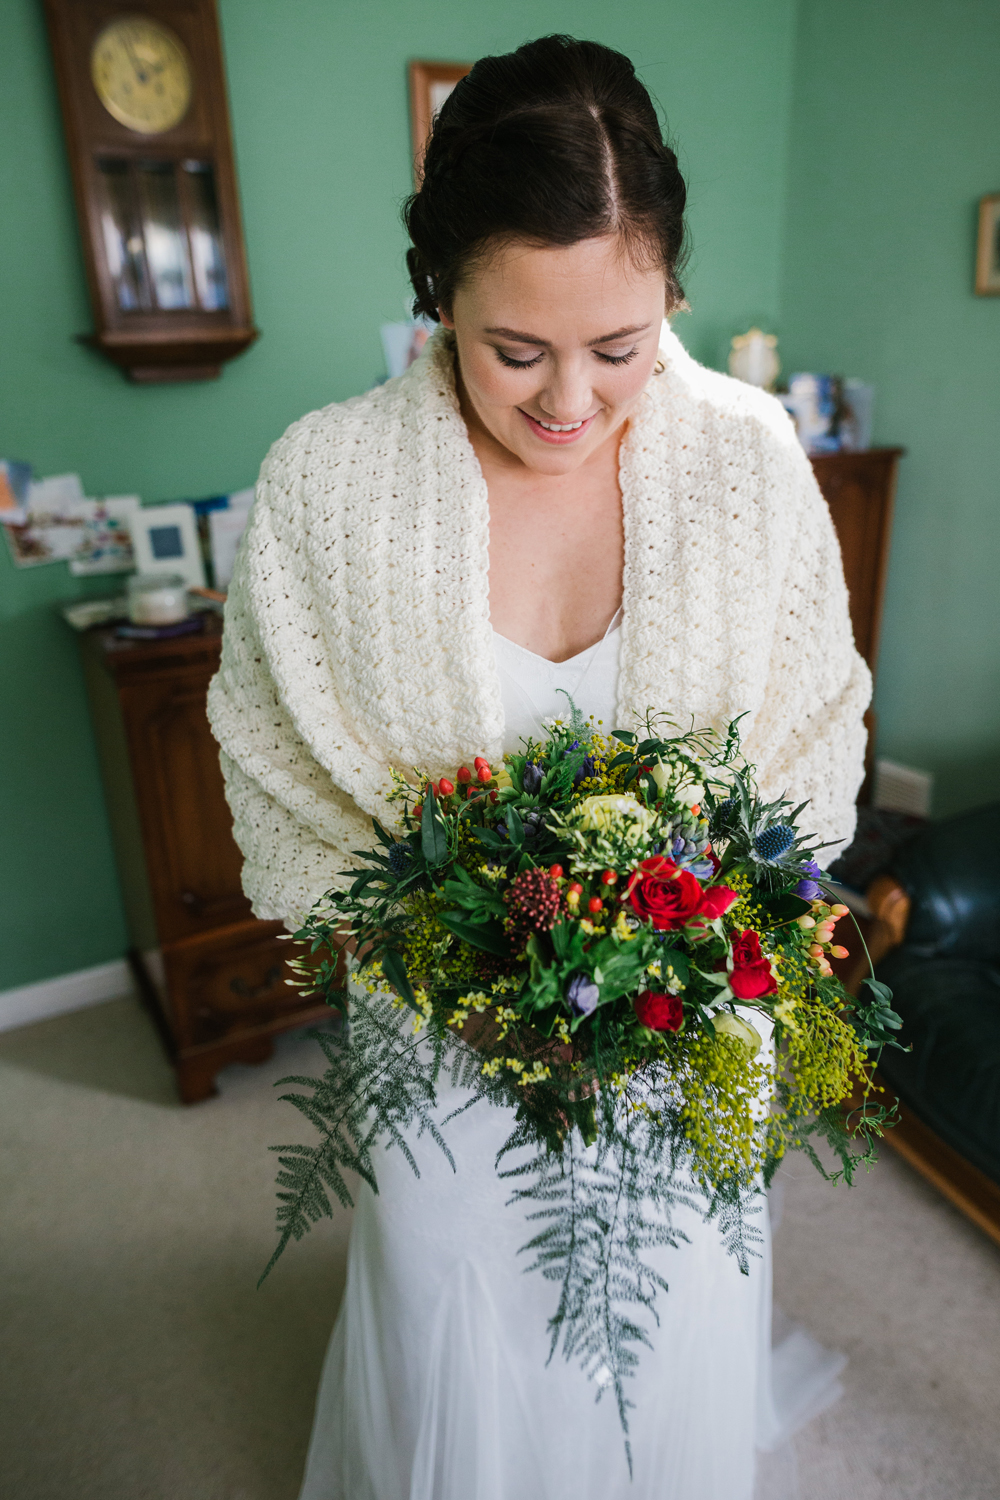 bride with bouquet in crocheted shawl by Emma and Rich